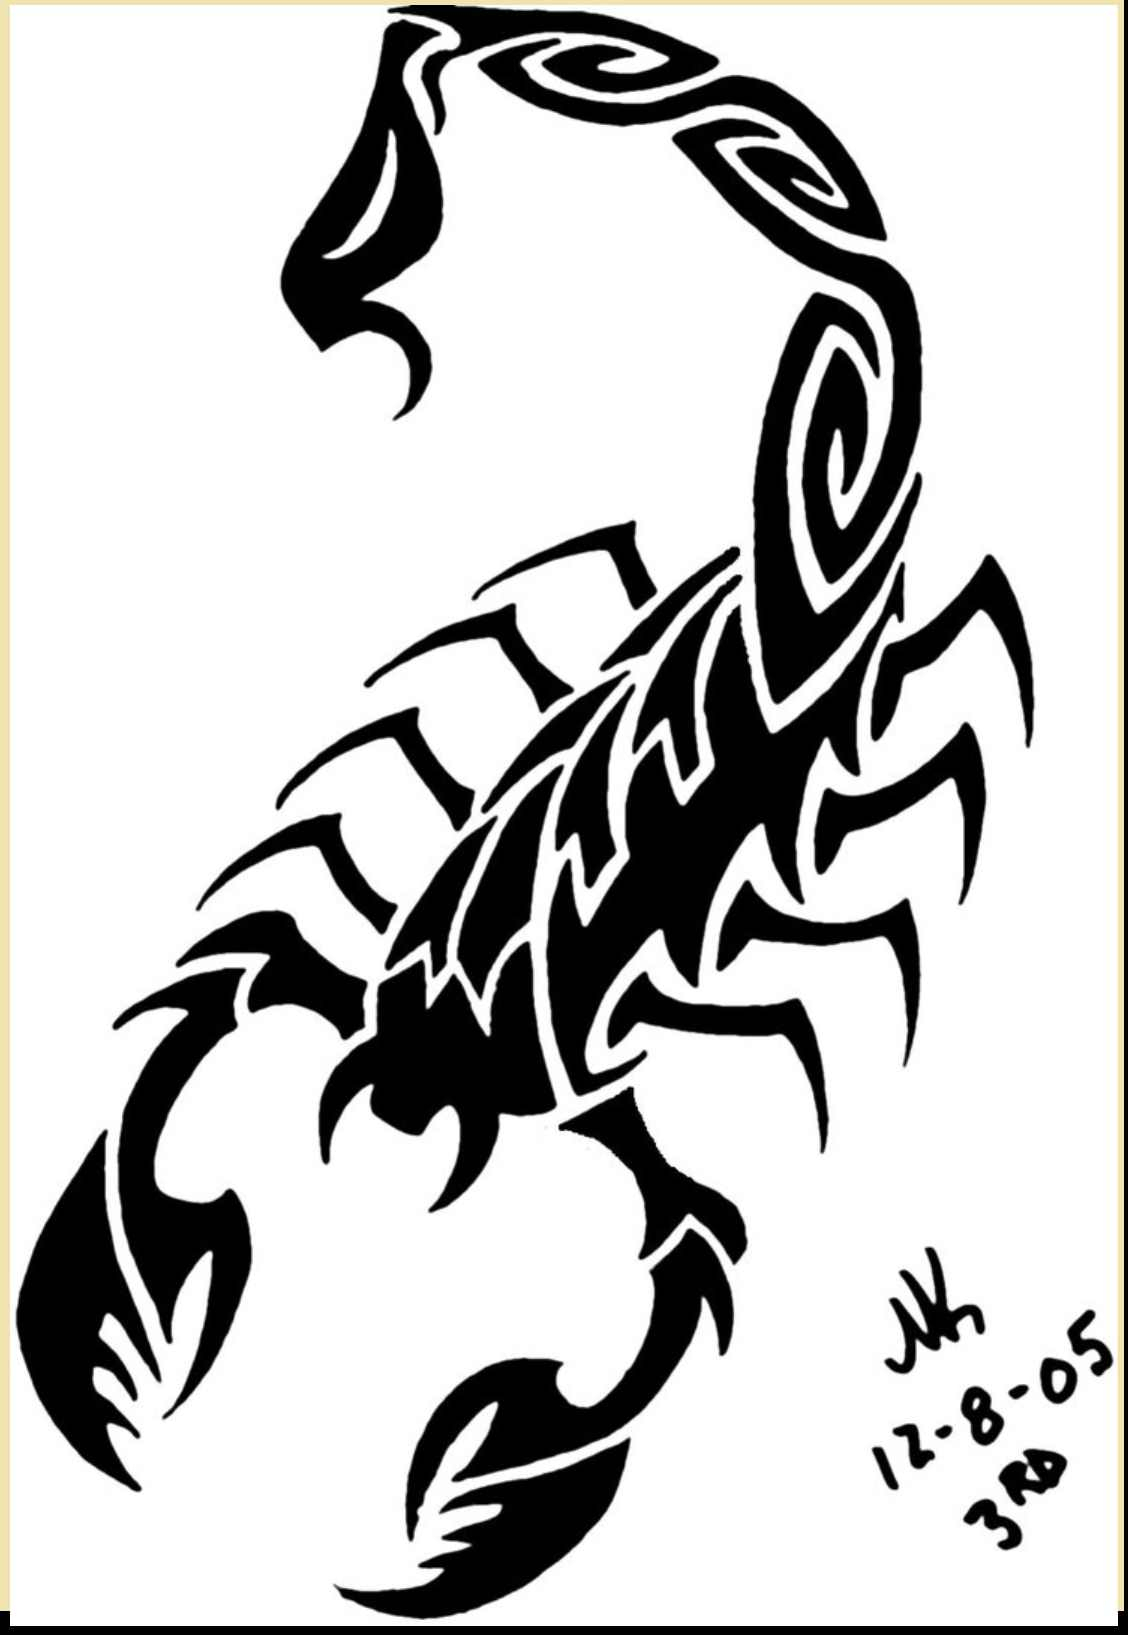 Realistic Scorpion Drawing at GetDrawings com | Free for